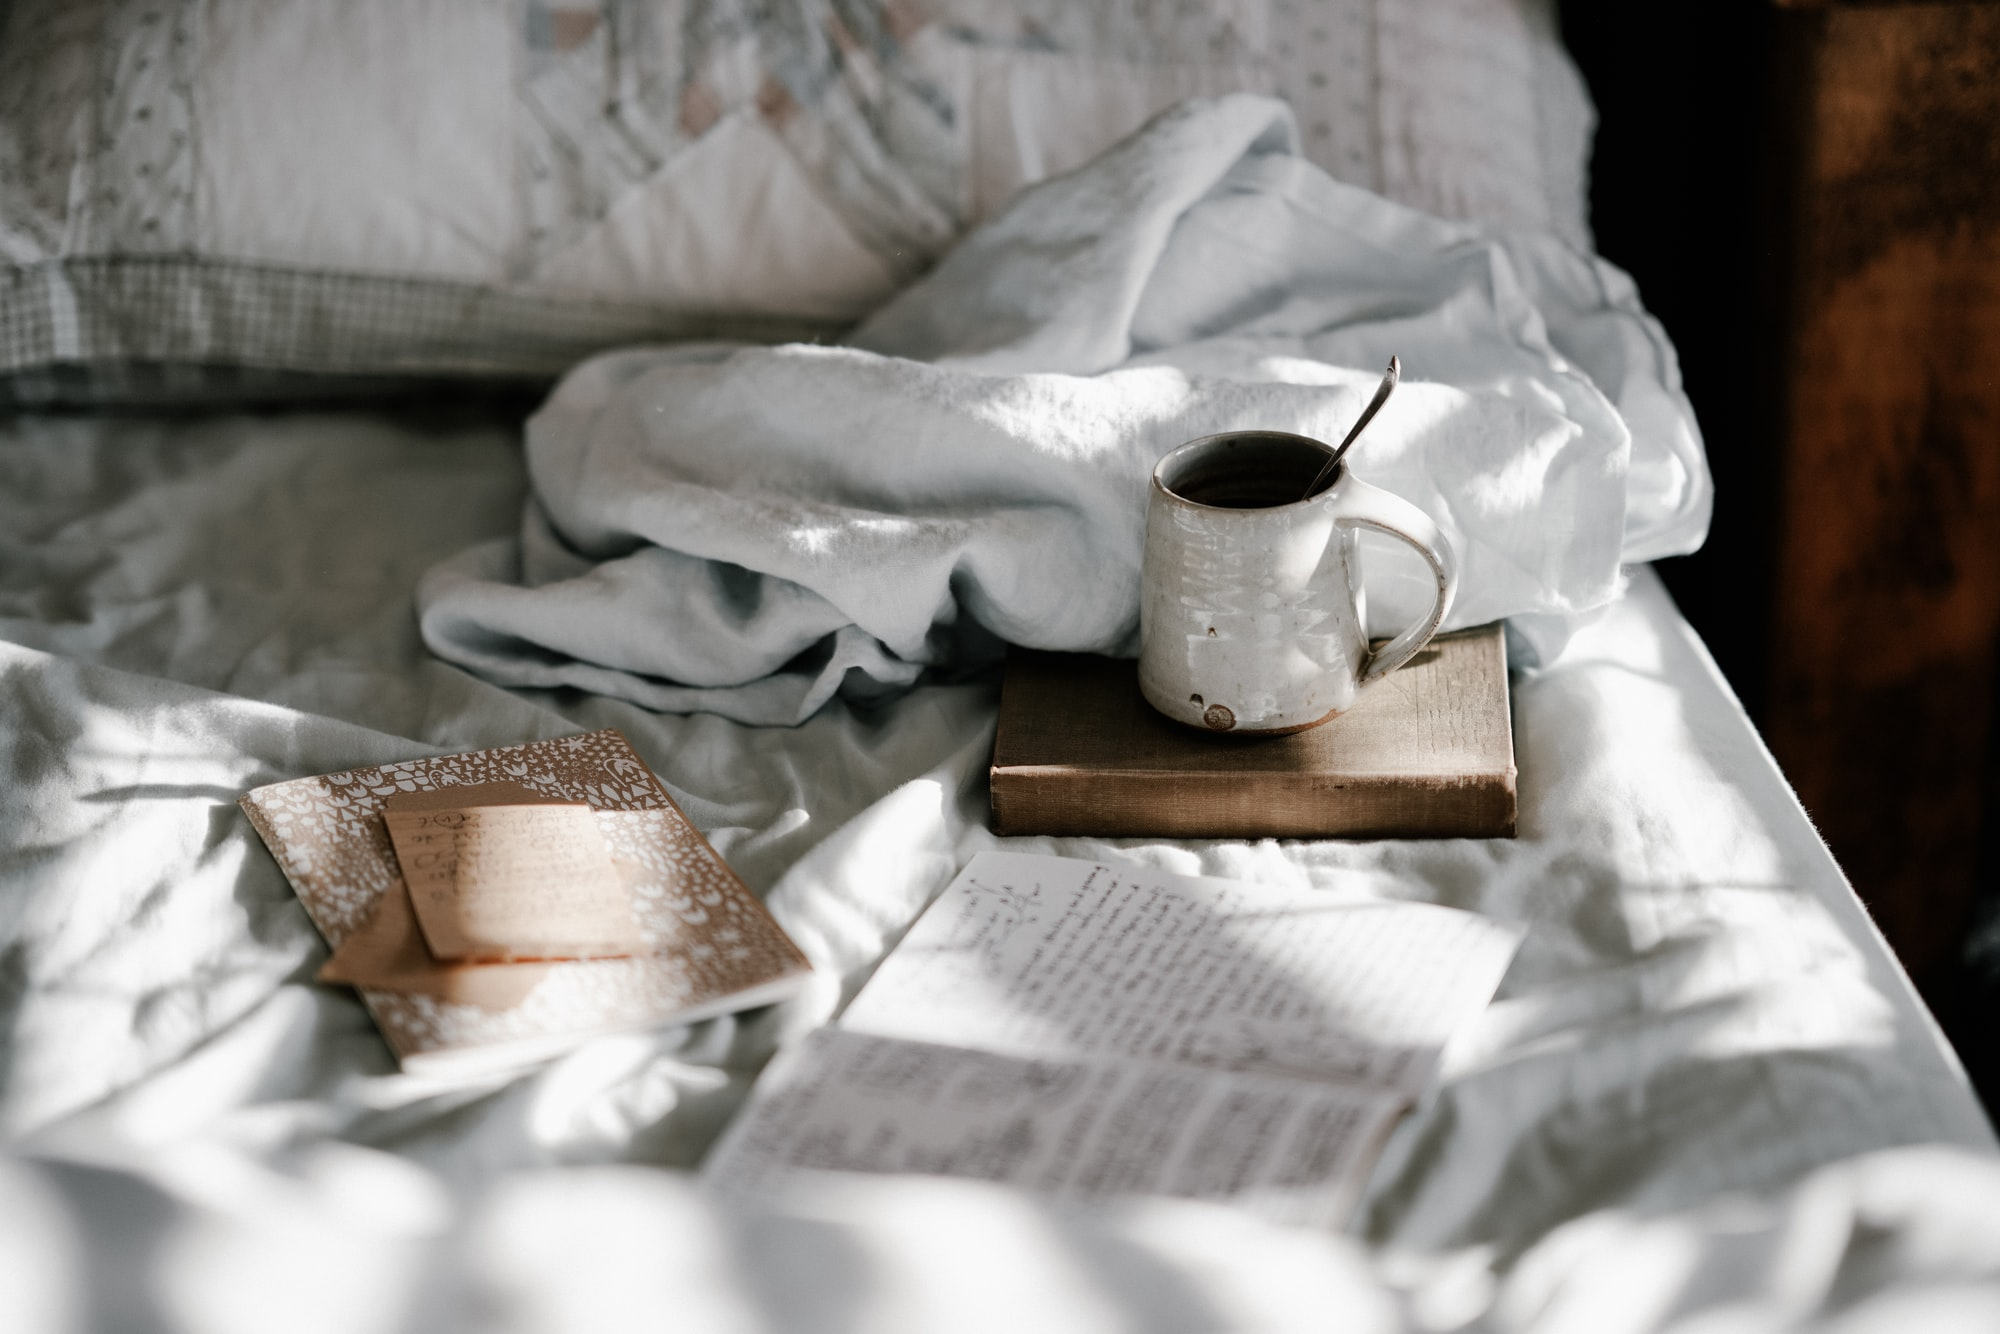 Mug and notebooks on bed